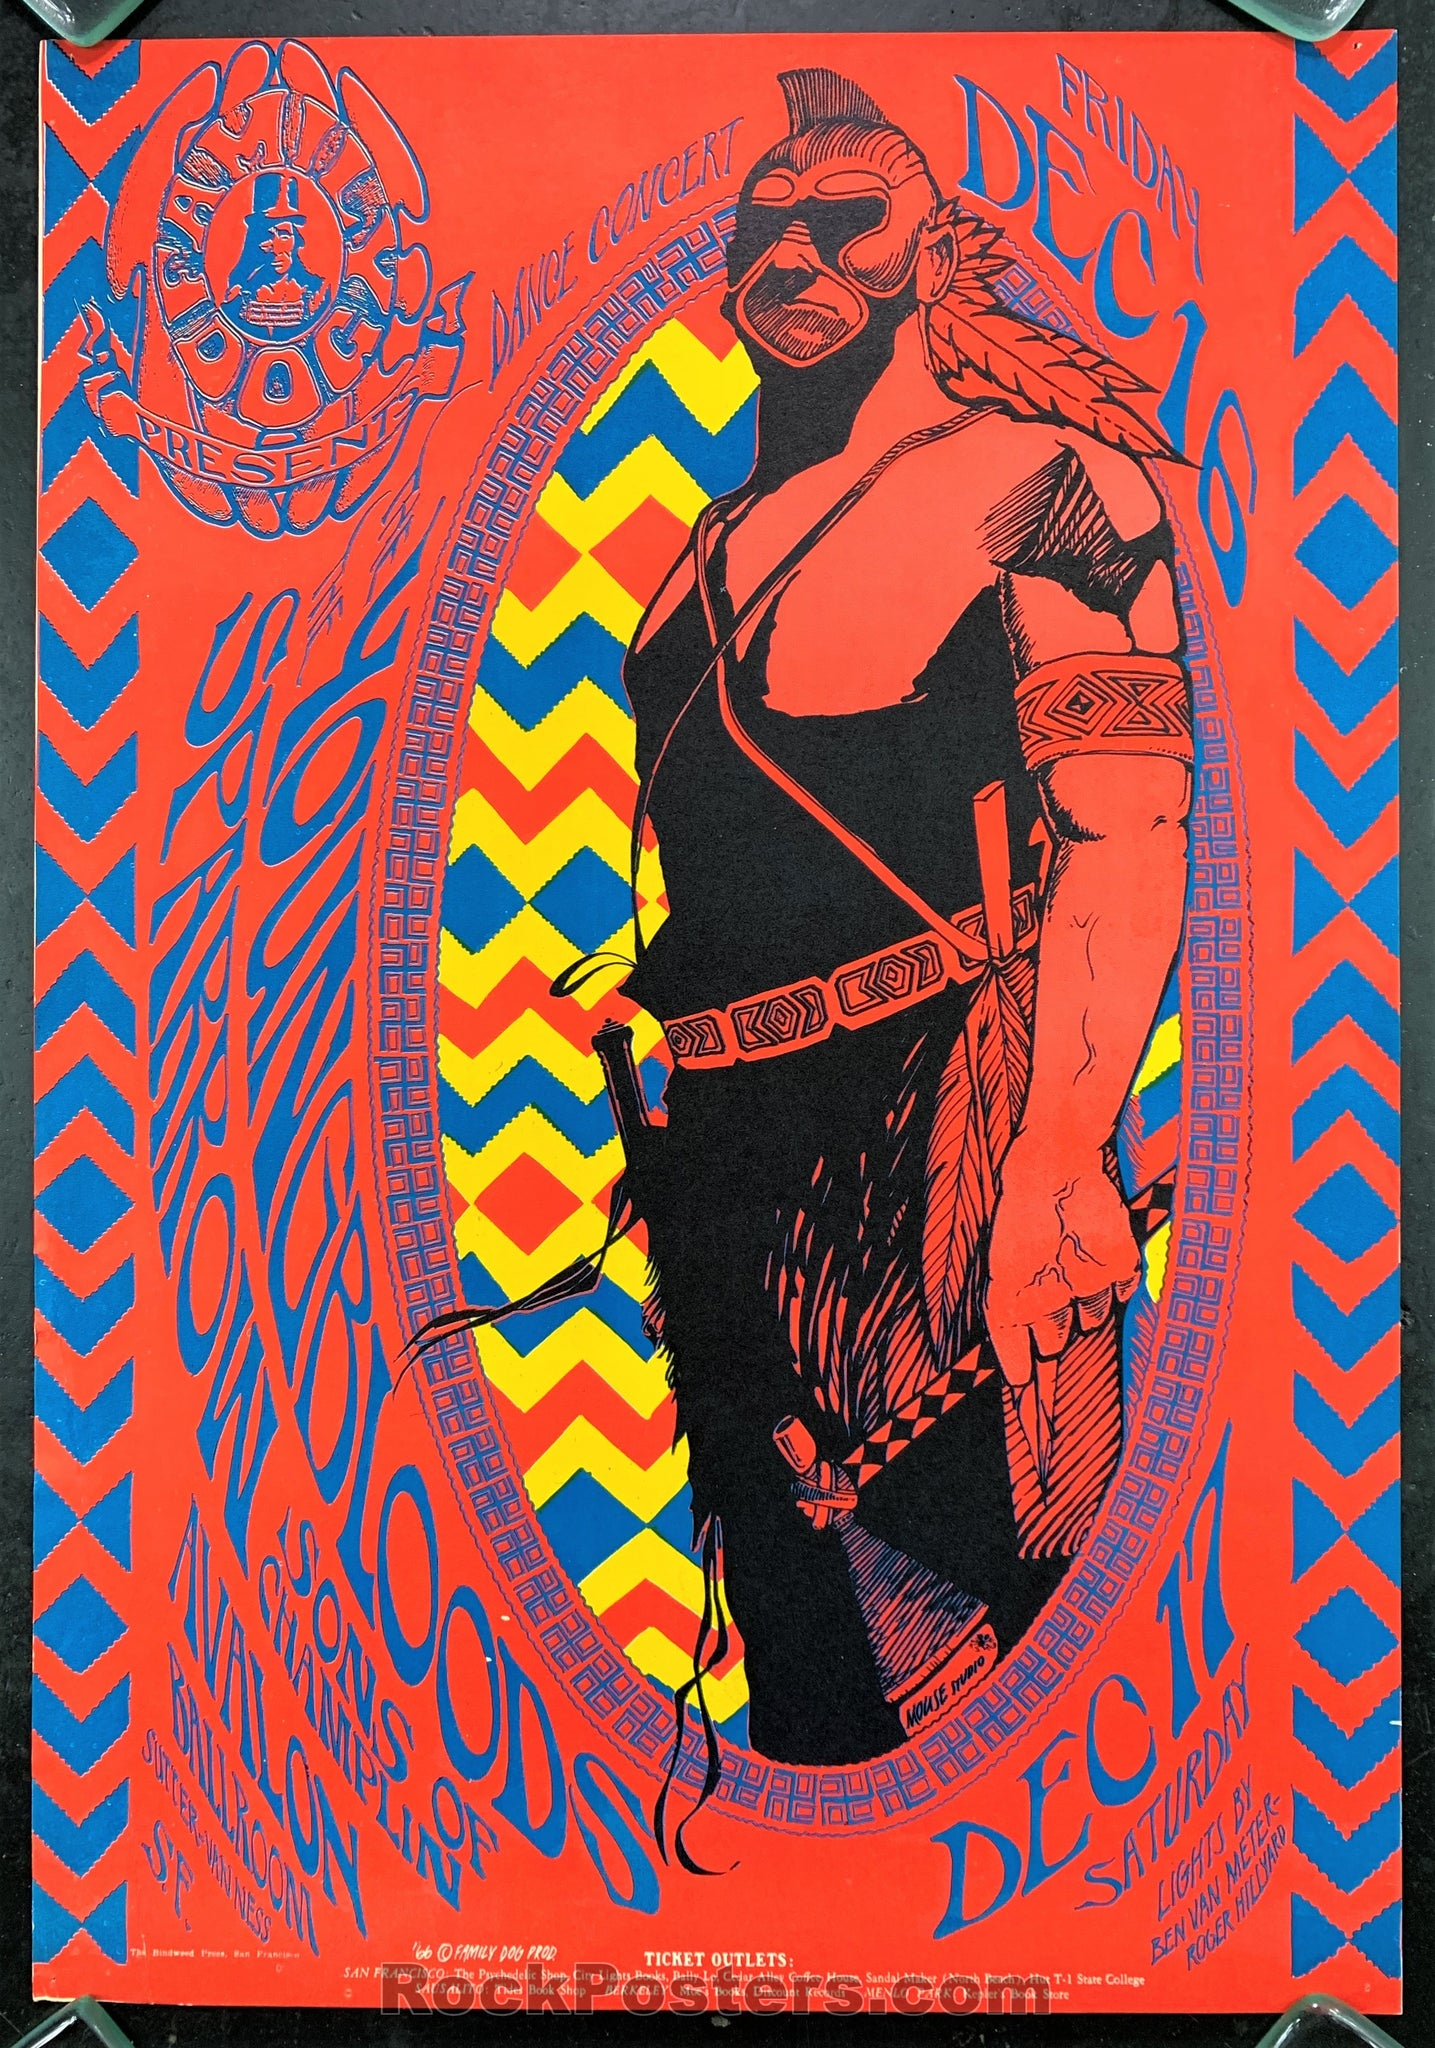 AUCTION - FD39  -  Youngbloods 1966 Original Poster - Avalon Ballroom - Condition - Excellent